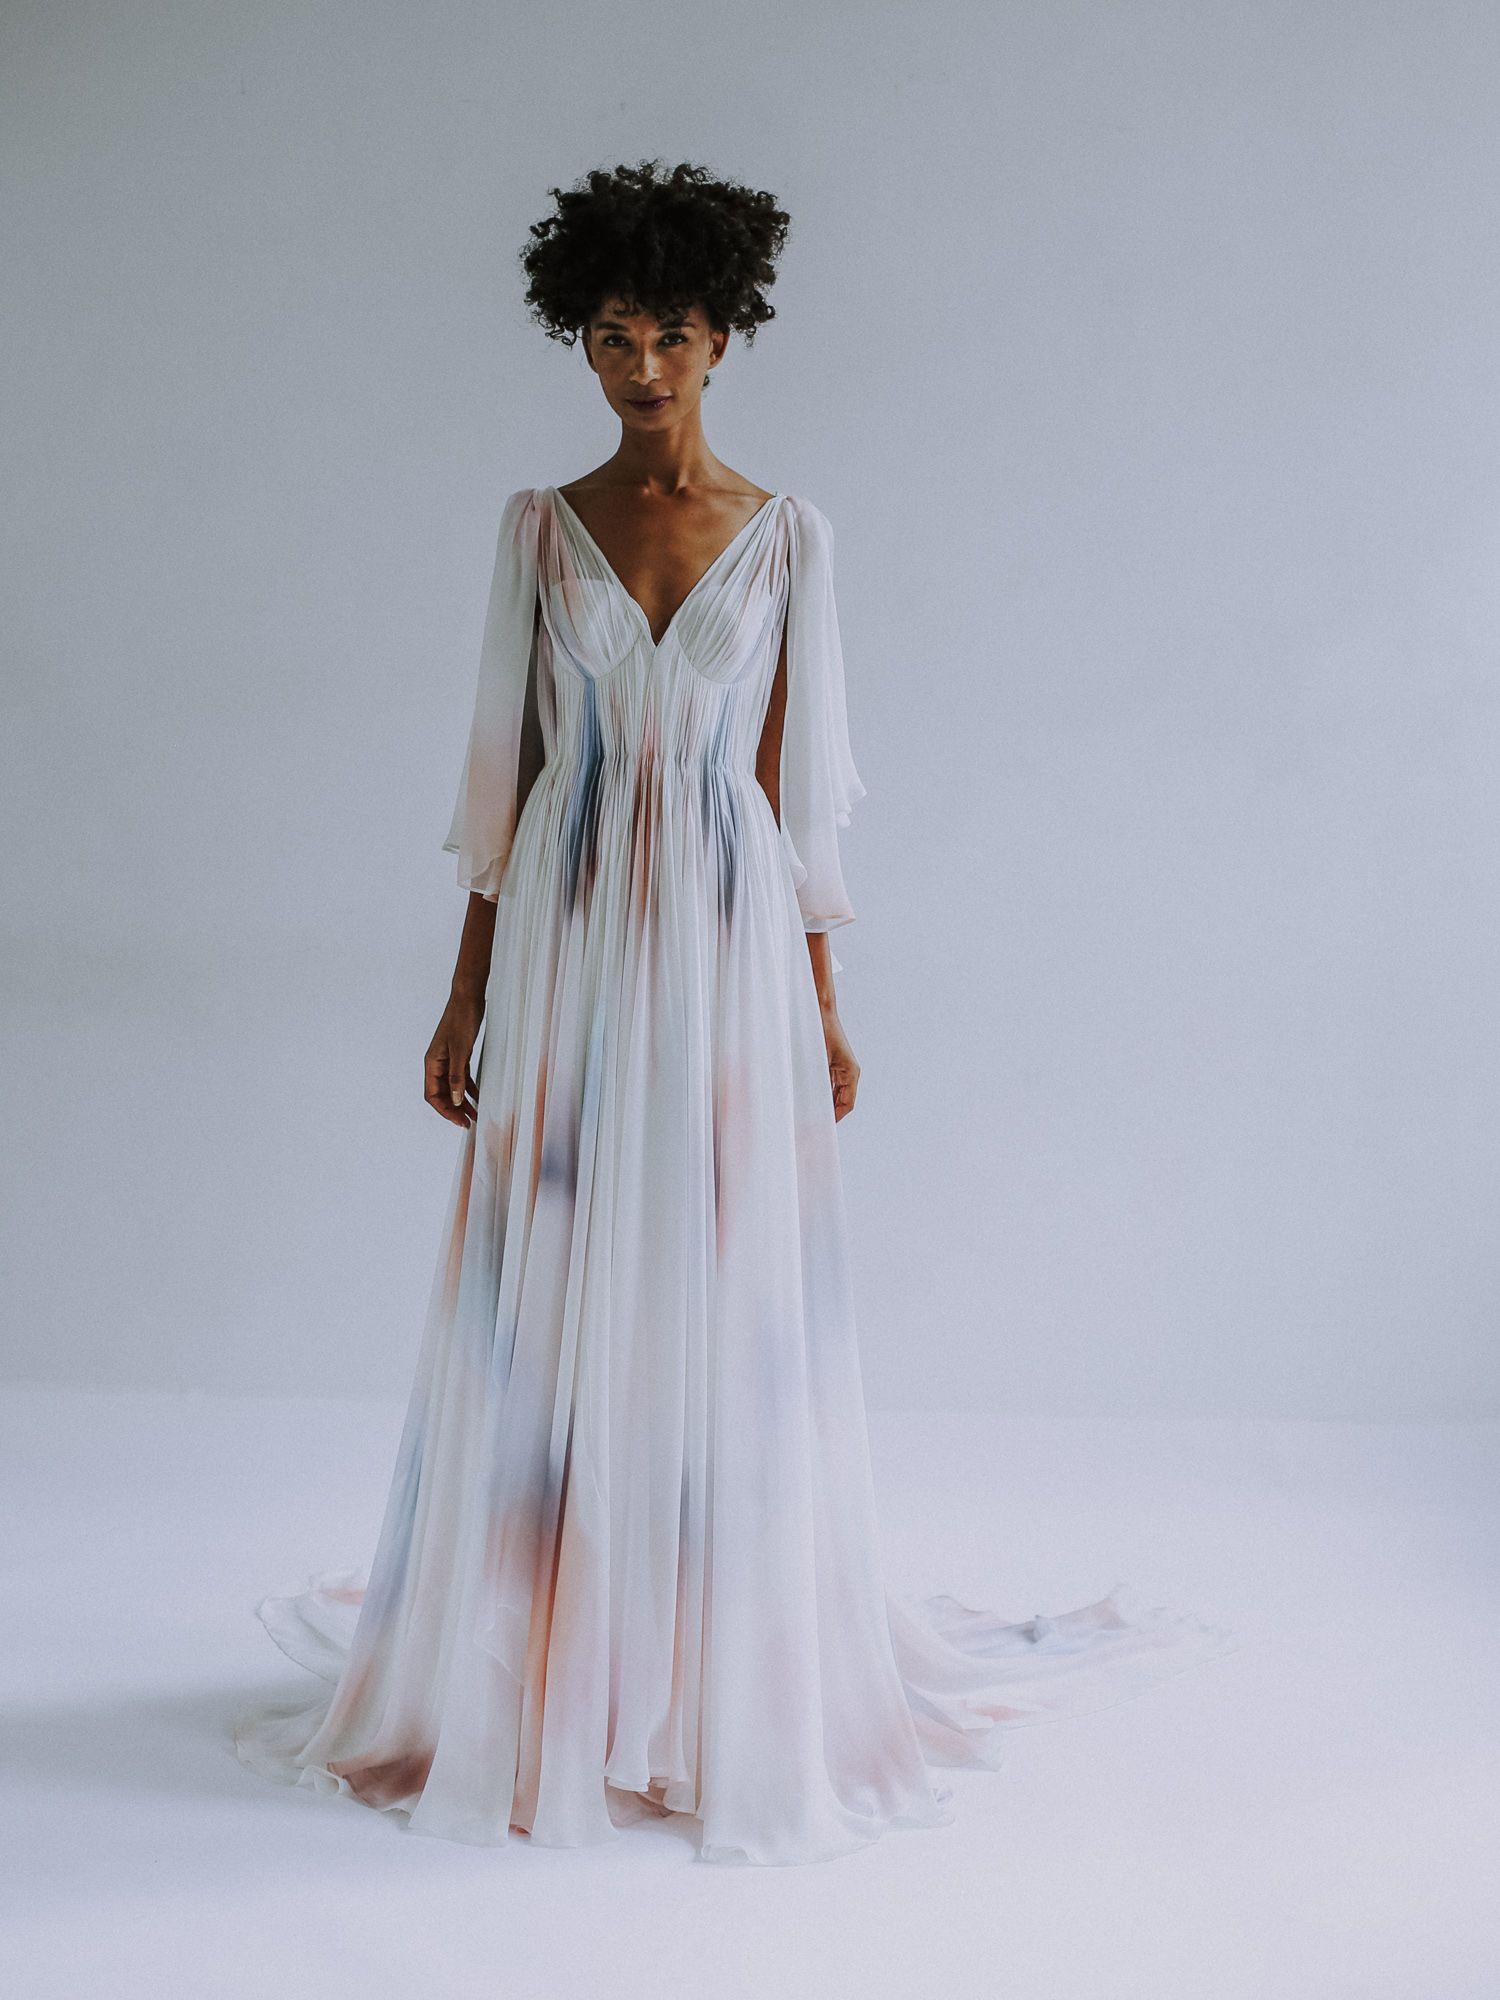 545b8df24c4 pastel and ivory printed feather weight silk chiffon grecian draped gown  over structured foundation bustier bodice. Removable scarf sleeve detail.